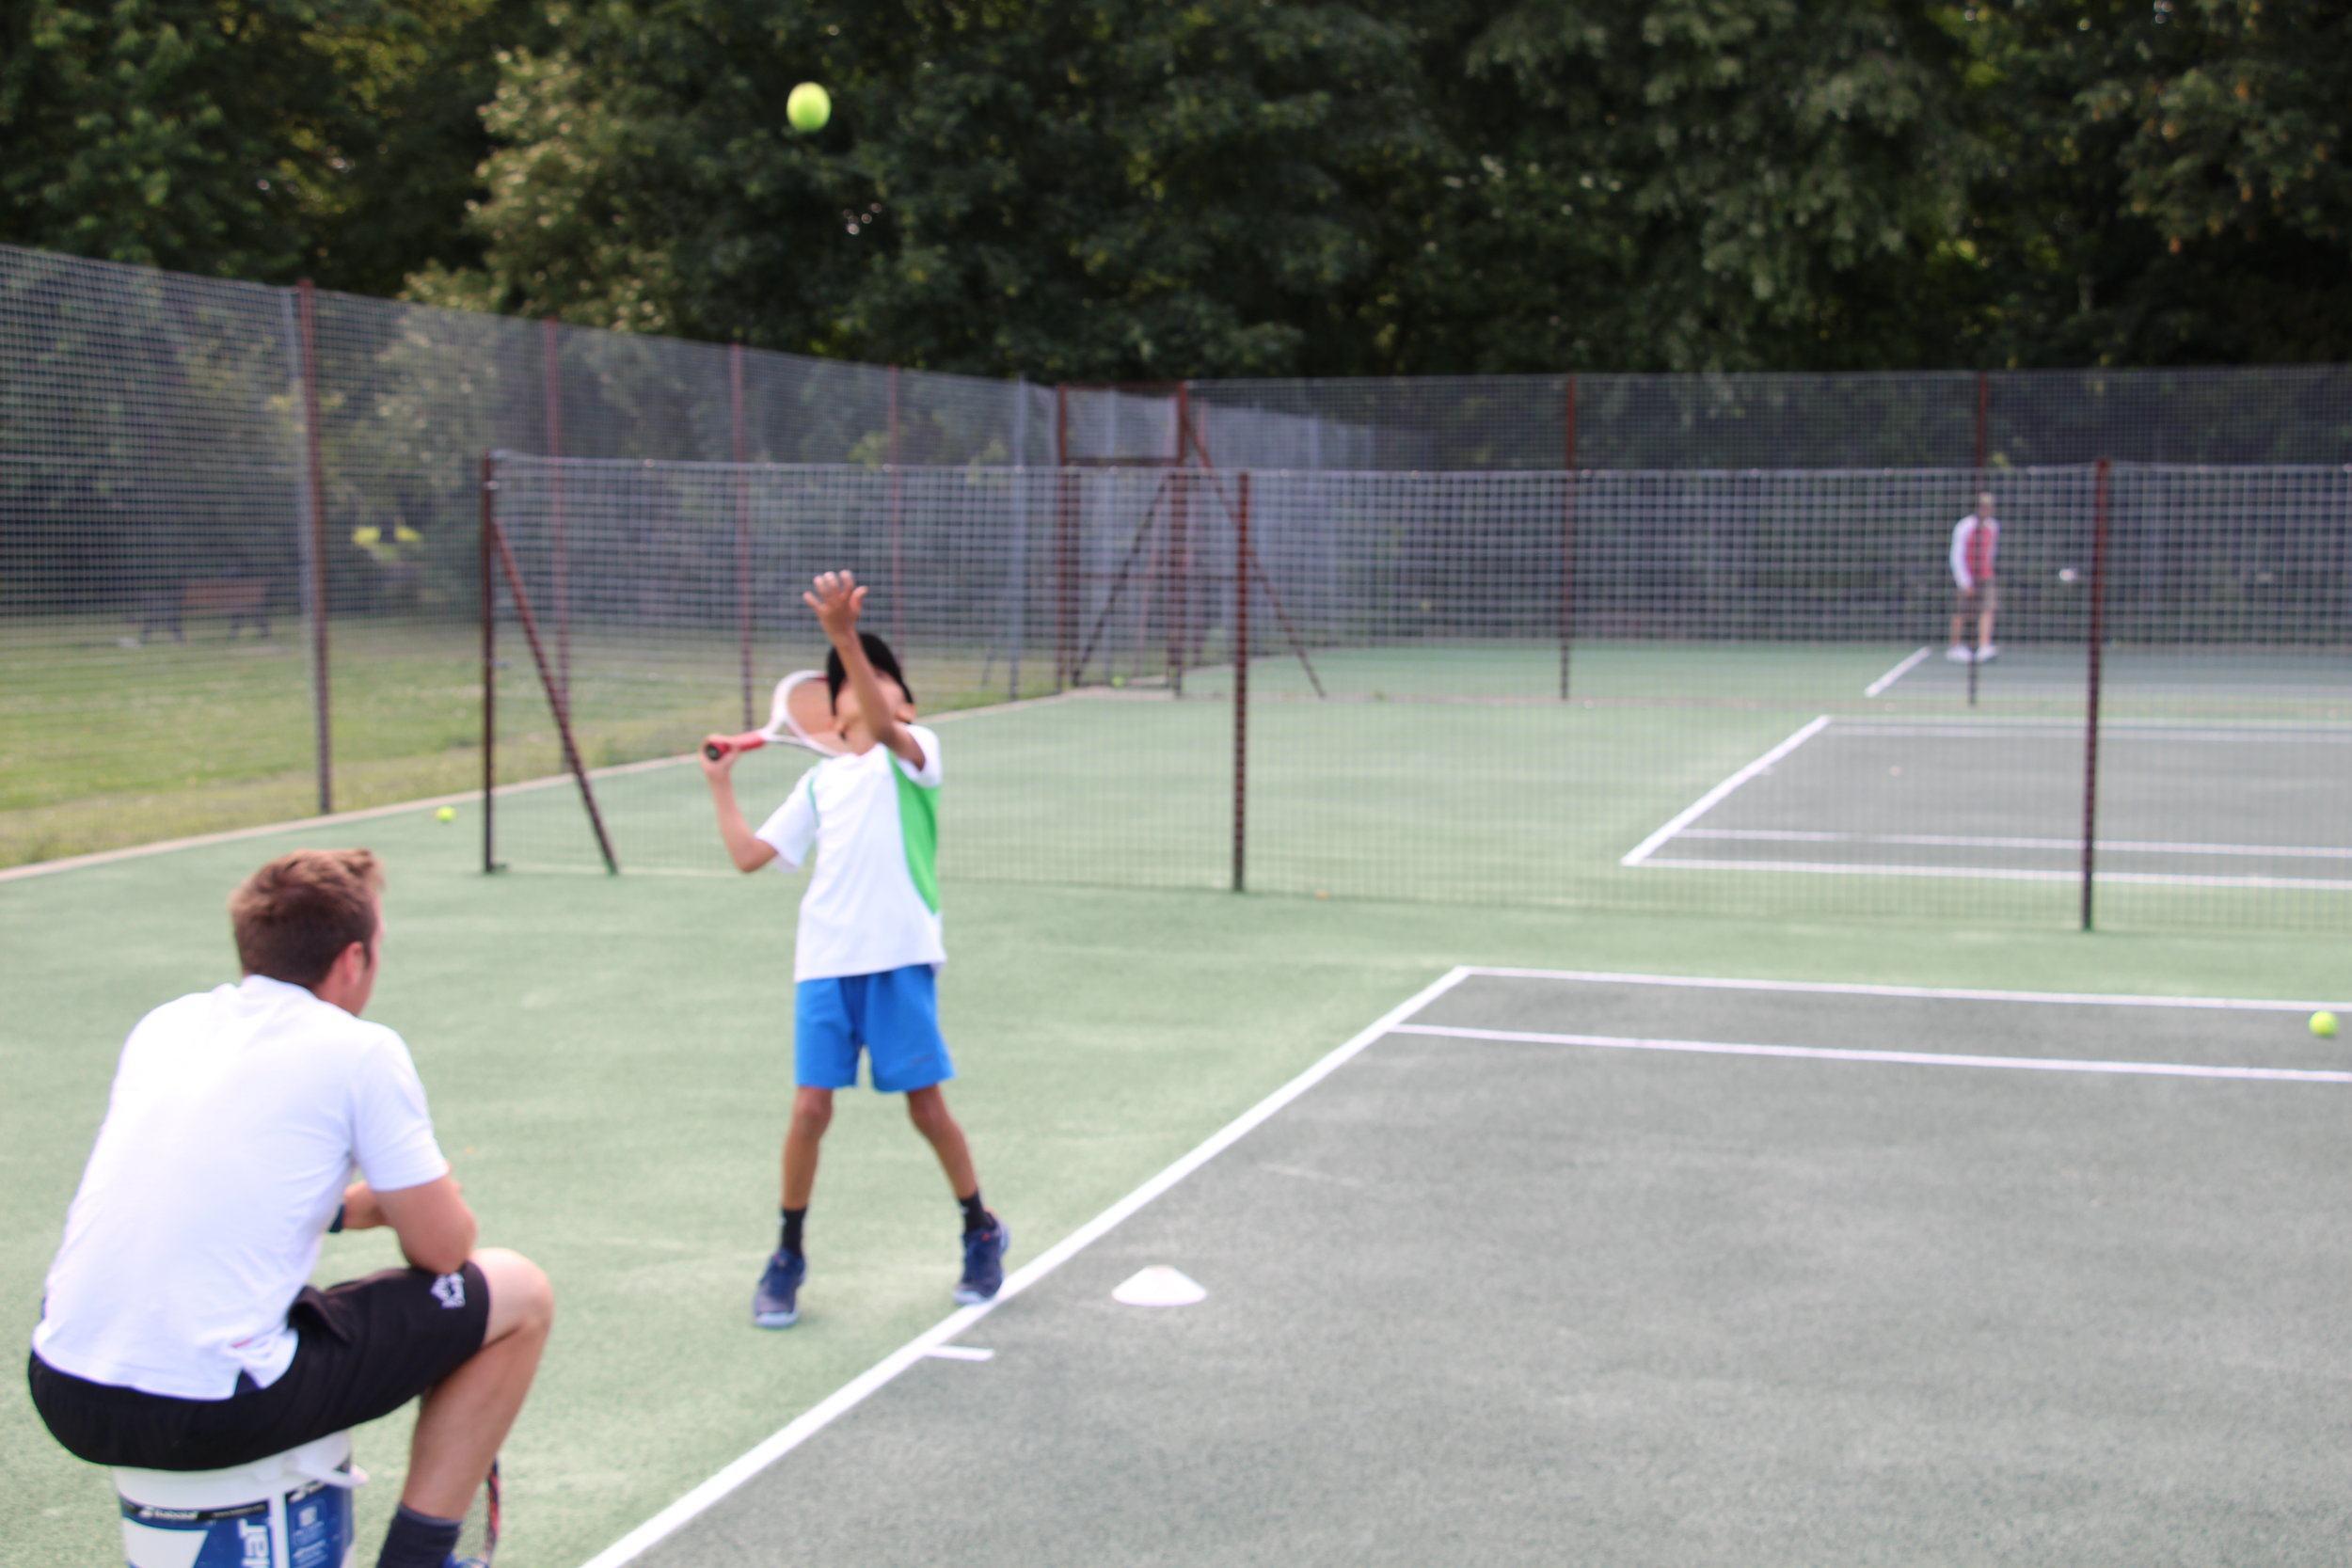 Summer Tennis Camps are a chance to get started in tennis or take your skills to a new level! (They're also a great way to keep kids busy during the holidays)